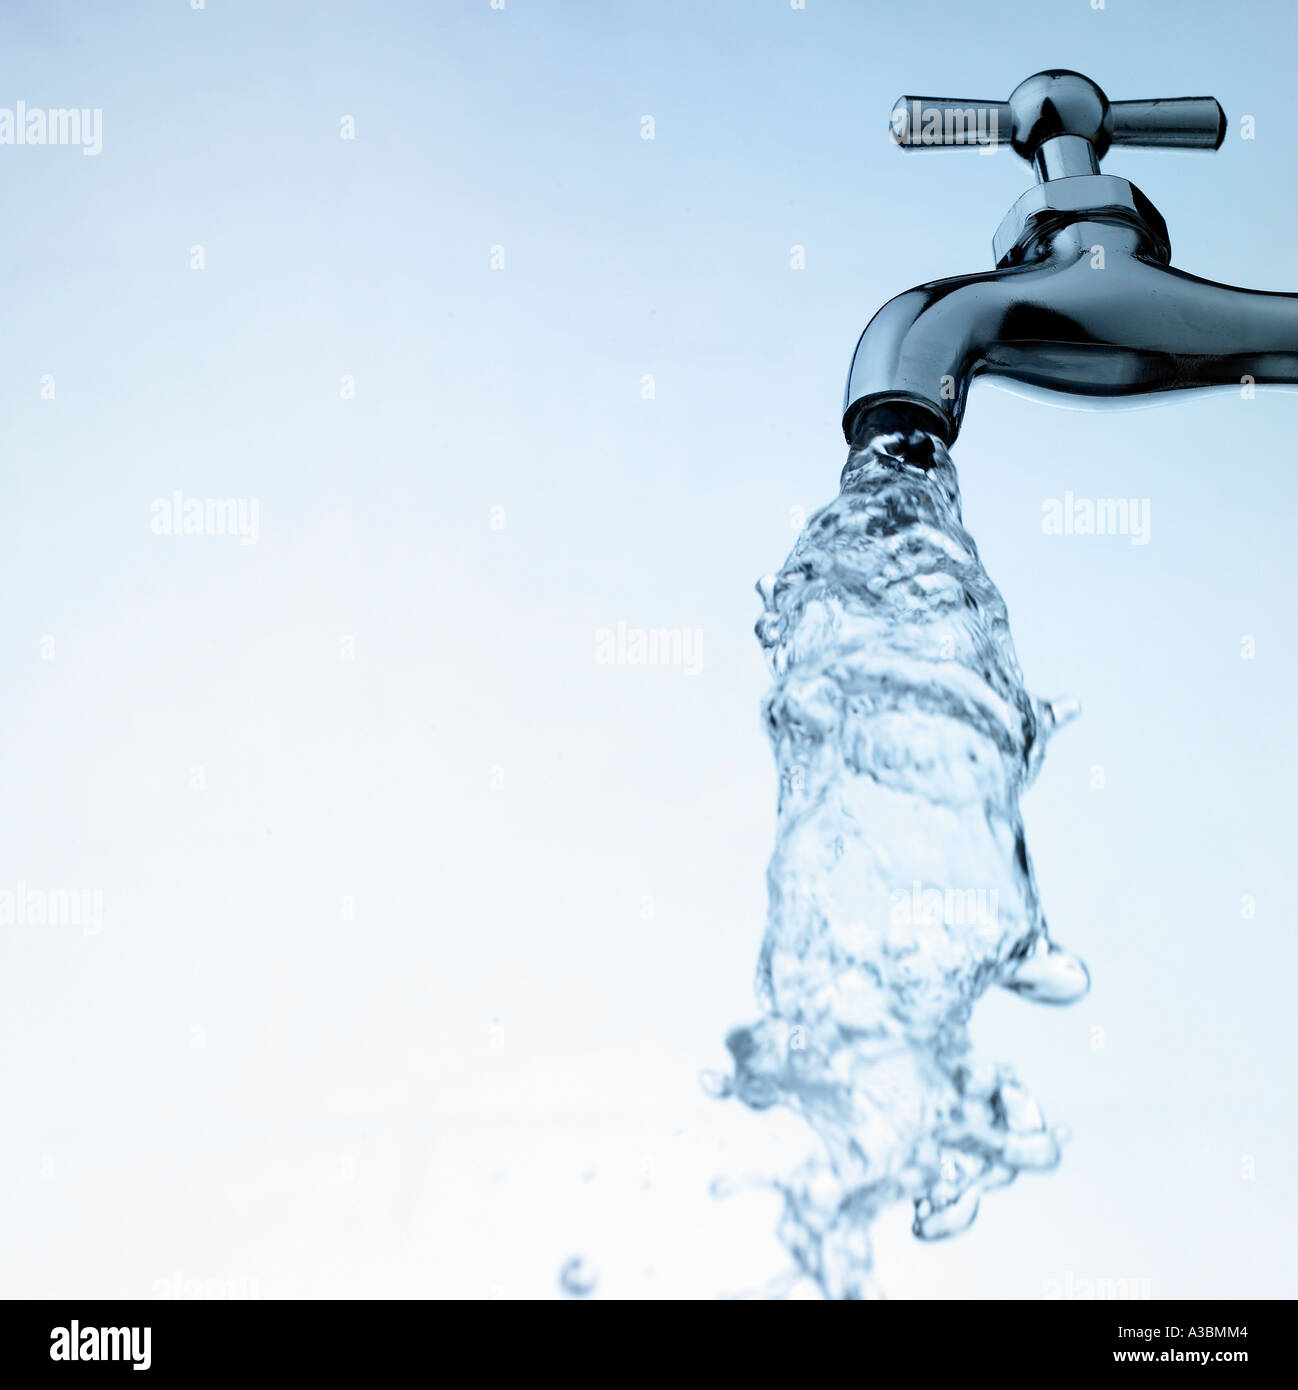 A water tap spouting watercourse - Stock Image